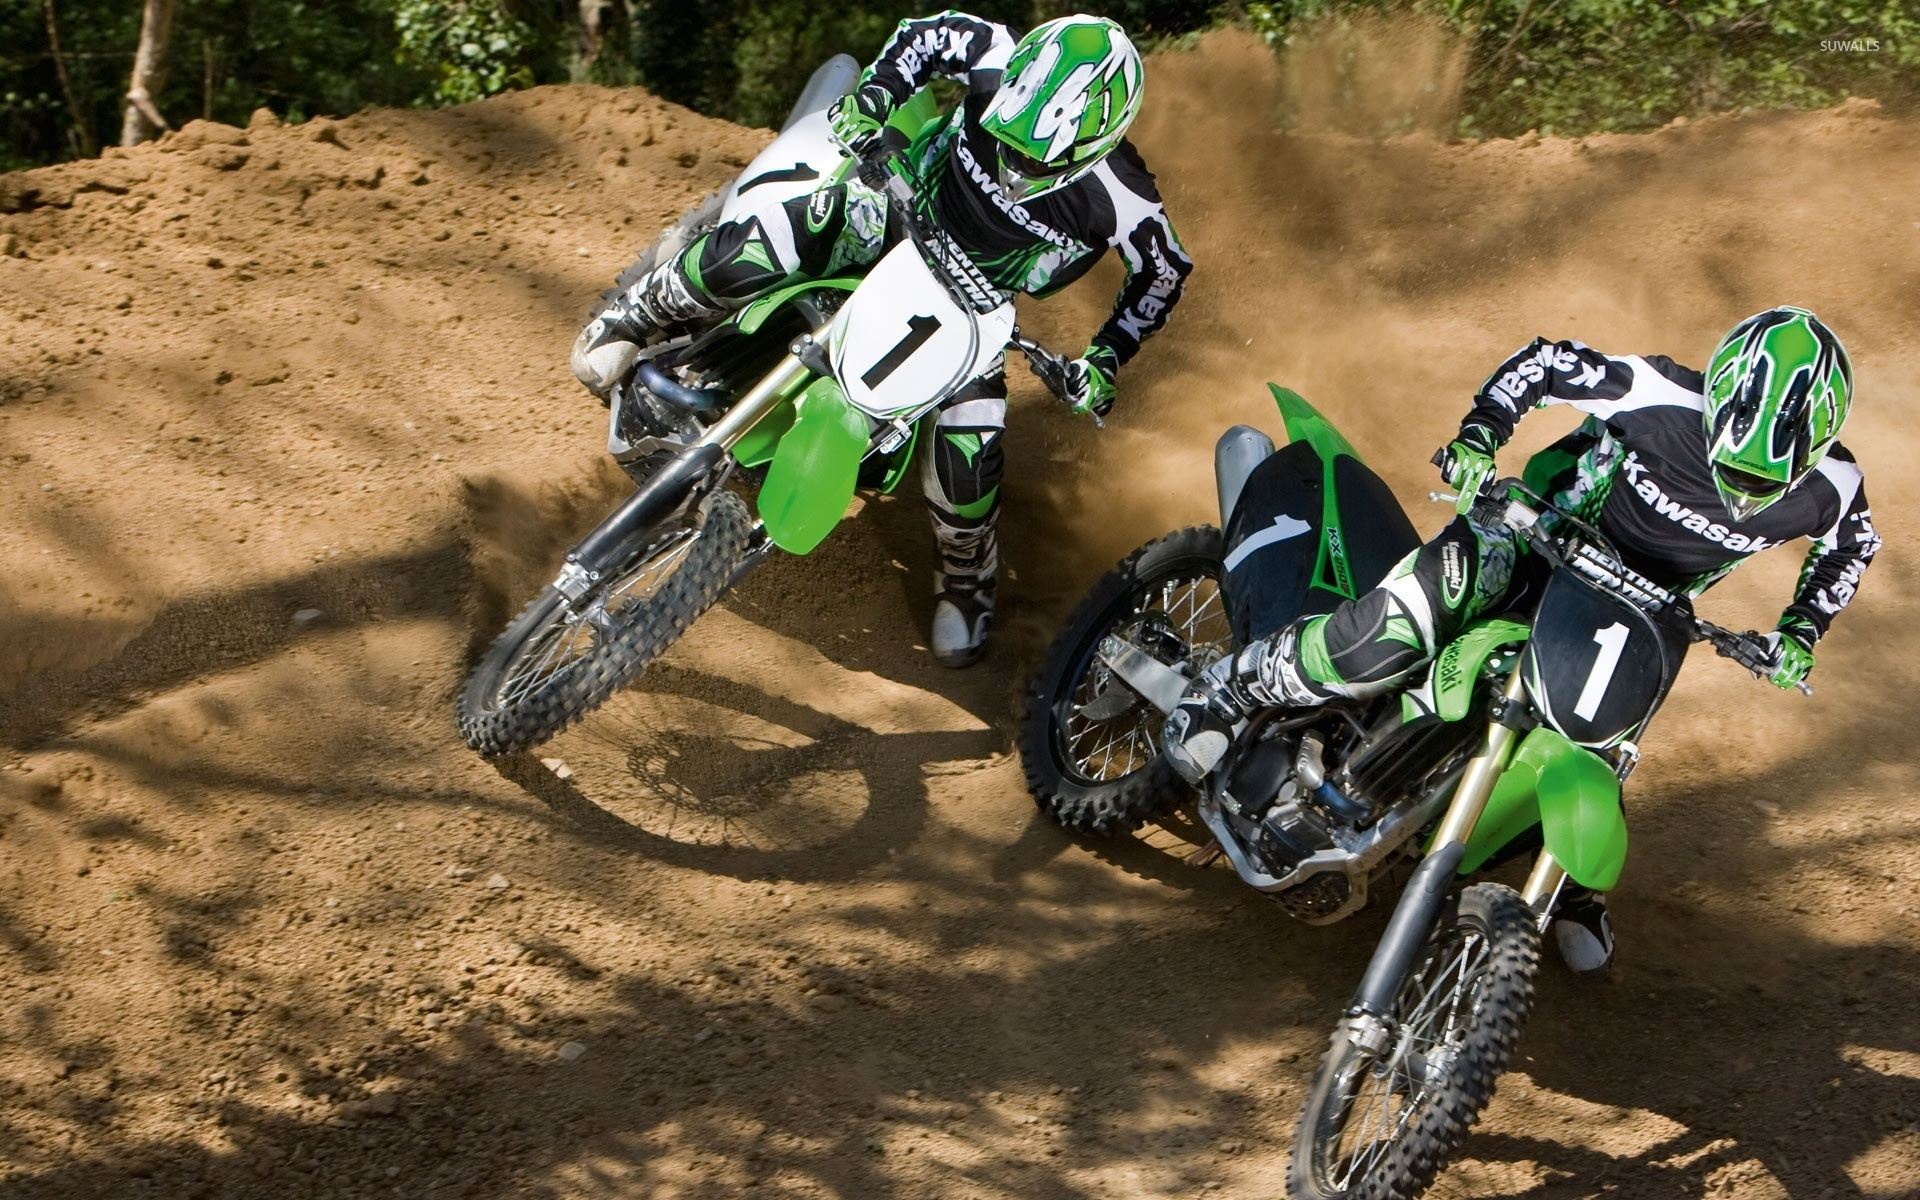 Kawasaki Kx450f 4 Wallpaper Motorcycle Wallpapers 24058